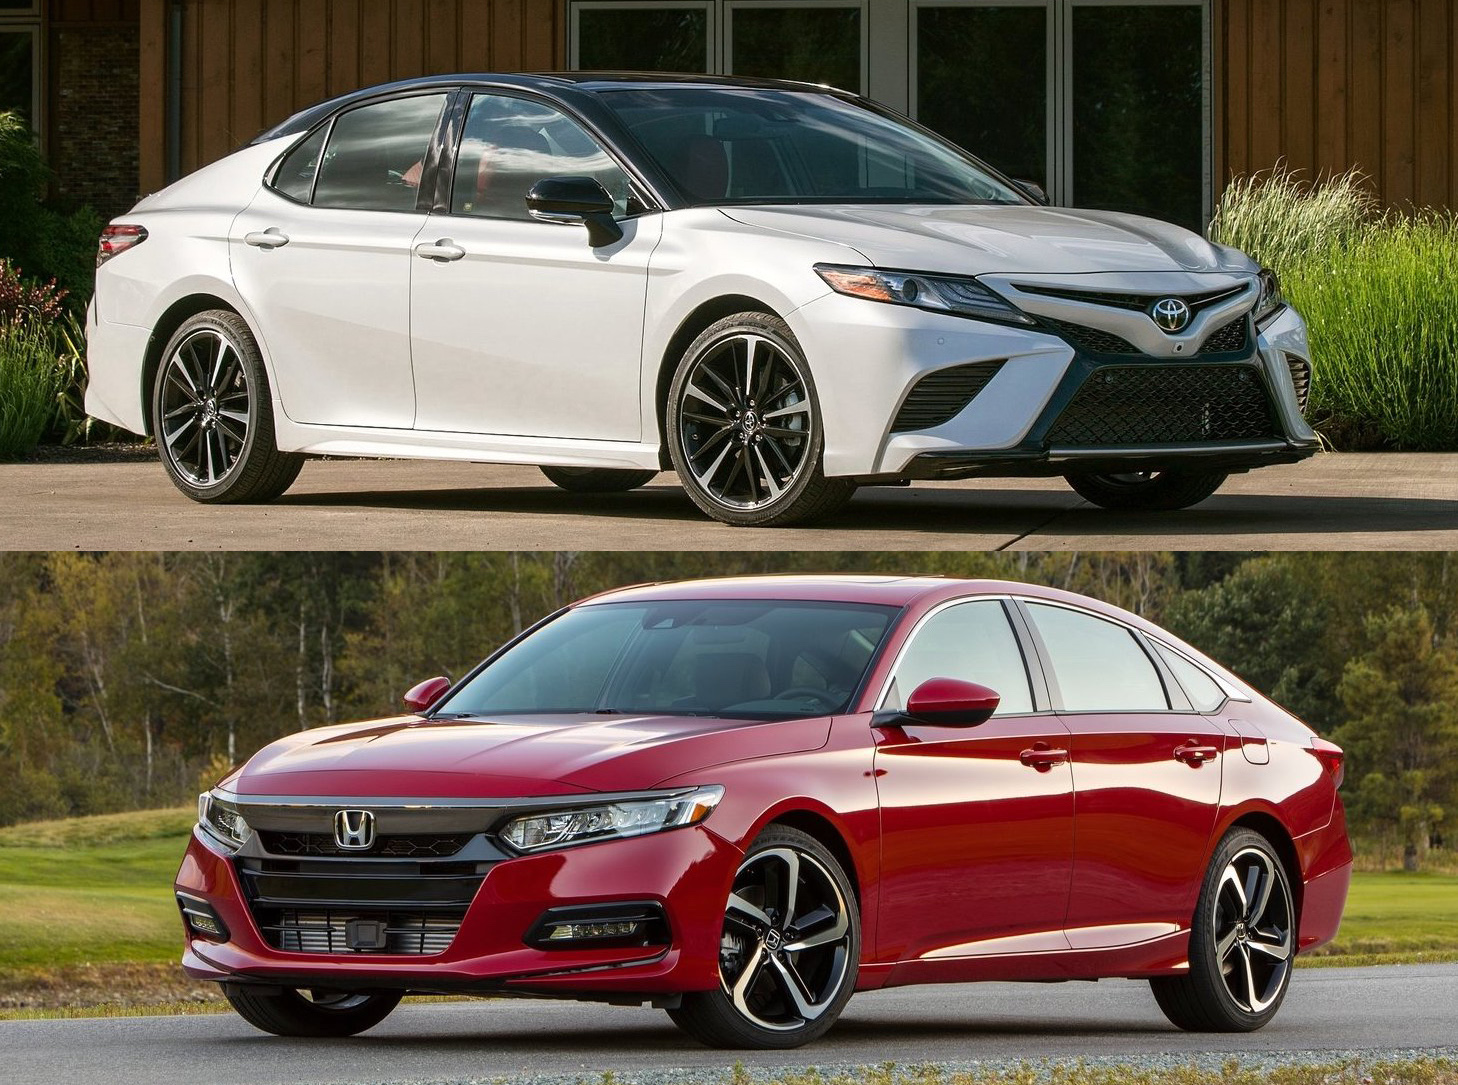 Toyota Camry Vs Honda Accord >> 2018 Toyota Camry Vs 2018 Honda Accord Pre Review